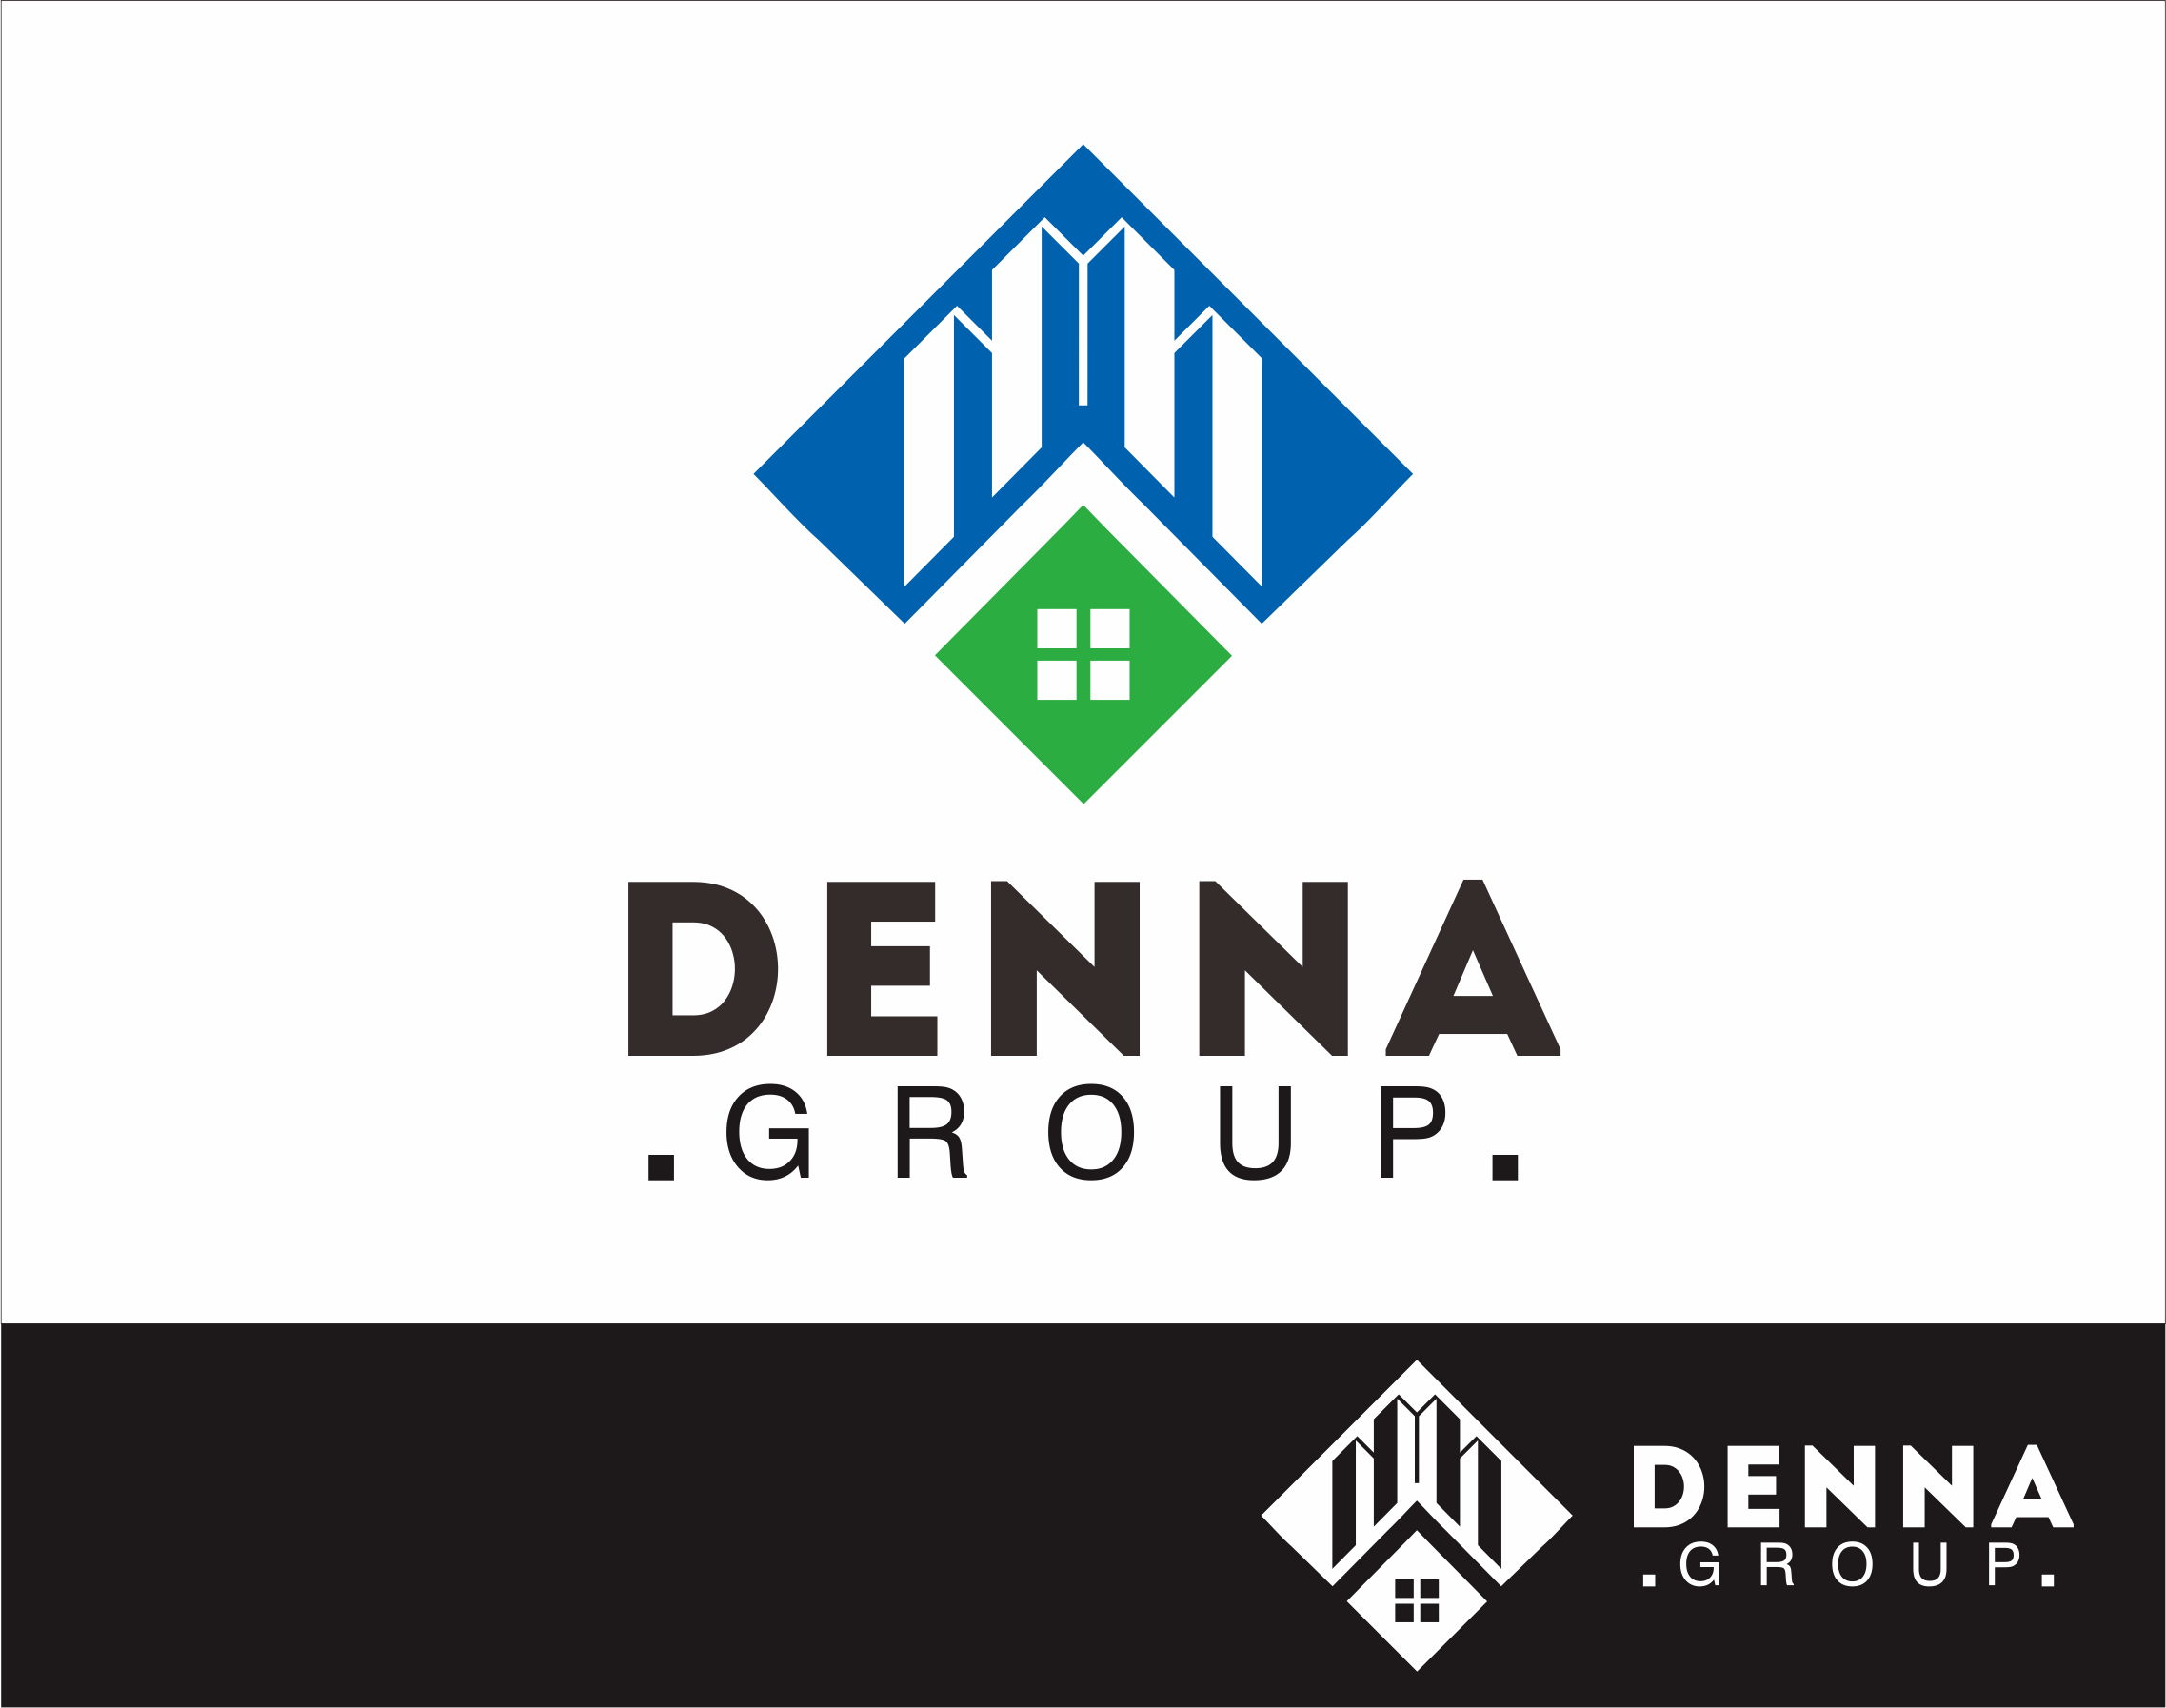 Logo Design by Armada Jamaluddin - Entry No. 59 in the Logo Design Contest Denna Group Logo Design.